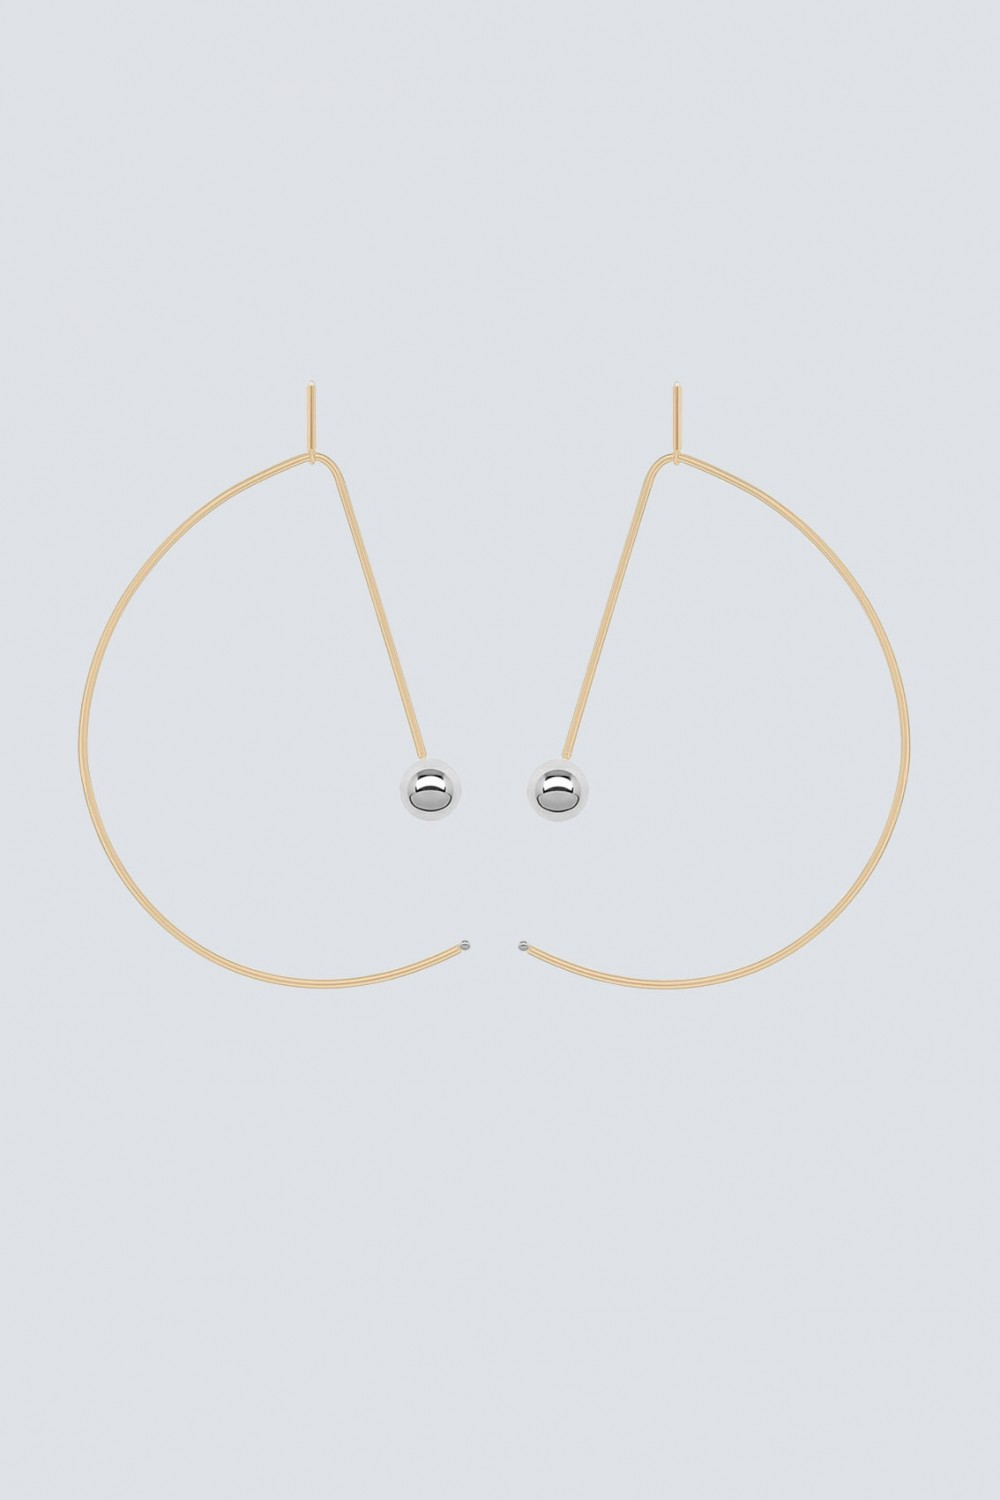 Reversible gold and palladium earrings